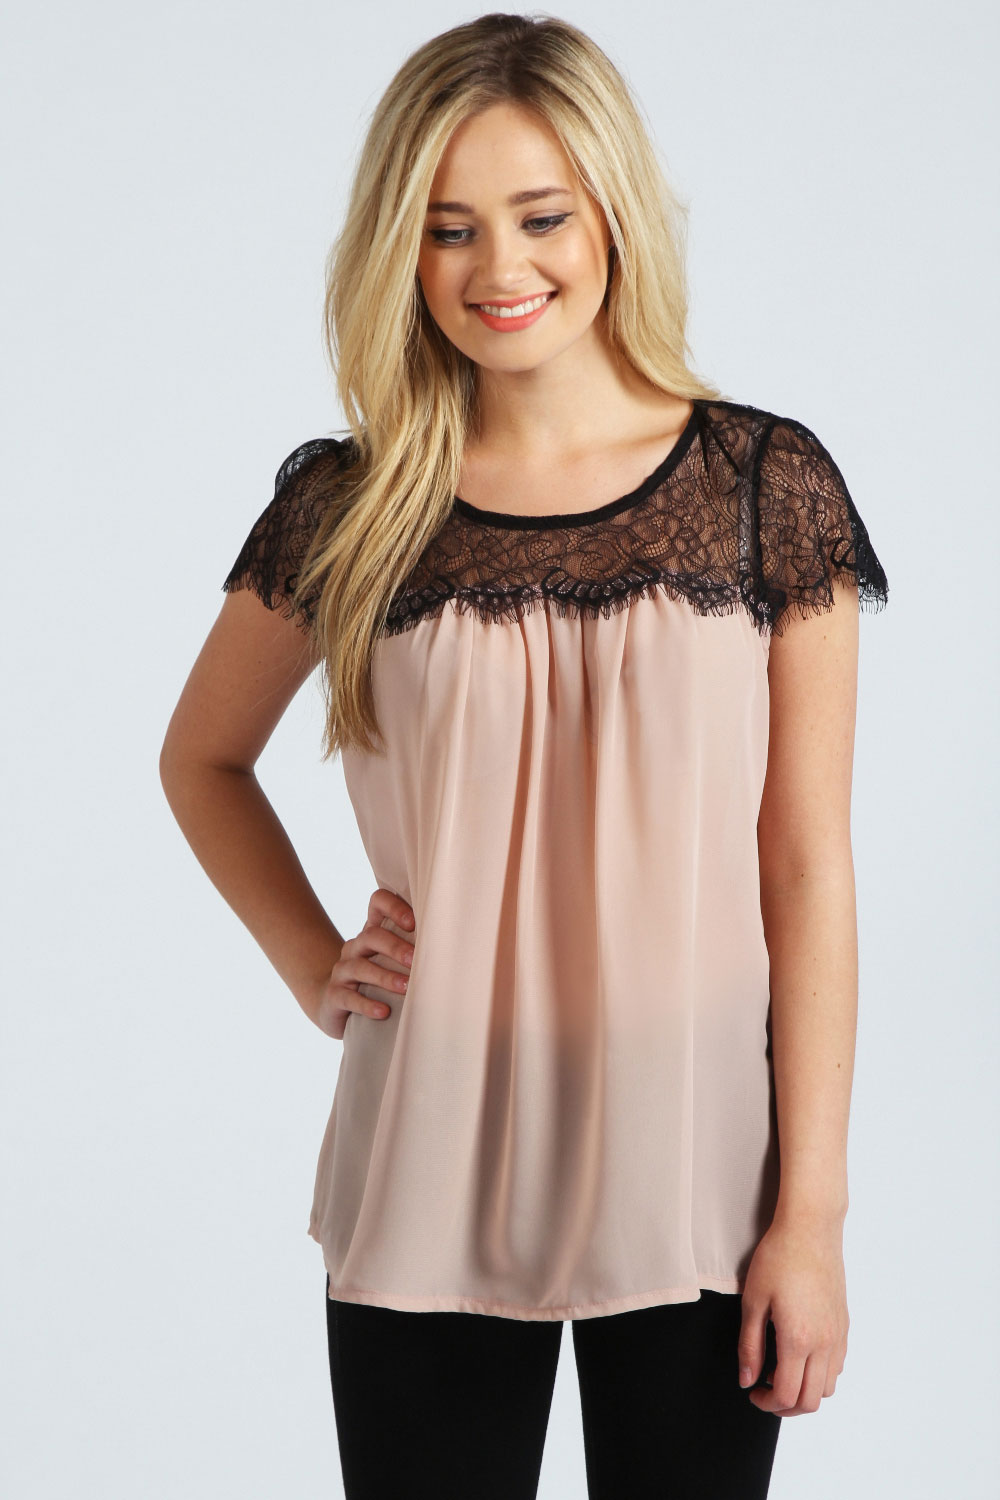 Beautiful Layered Chiffon Or Silk Tank Top With A Chain Detailing Straps And Neck. This Is So Flowy And The Metal Piece In Back Adds The Cutest Detail.